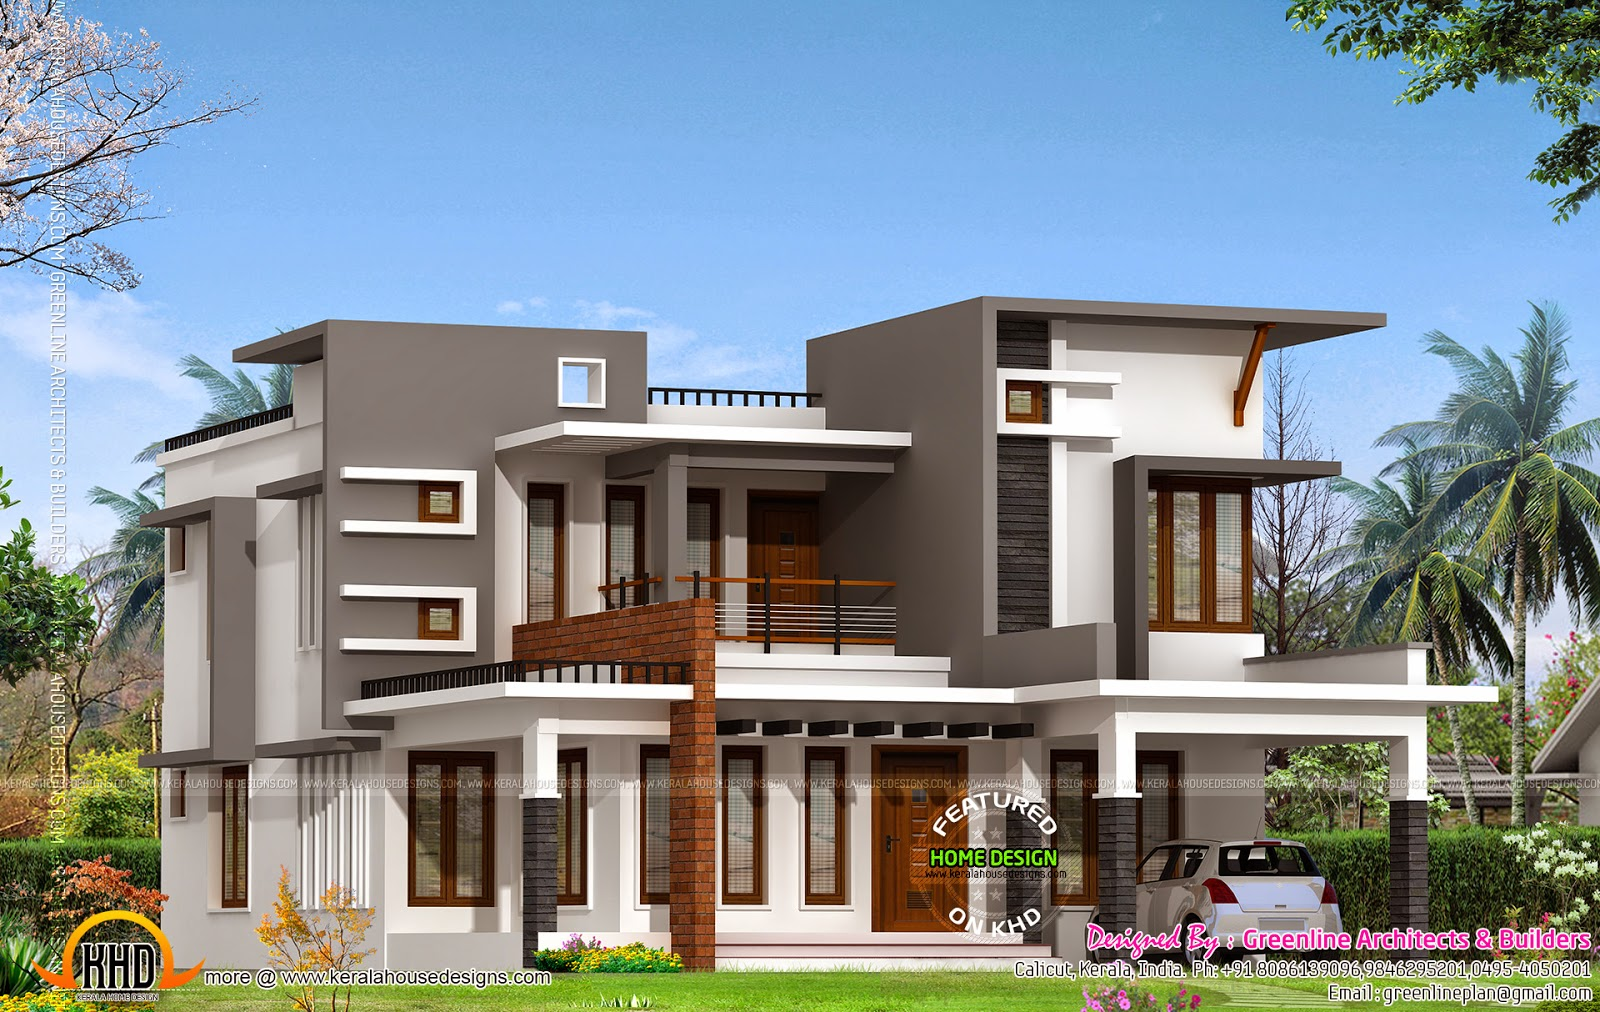 Contemporary house with estimate cost 28 lakhs kerala for House plans in kerala with estimate